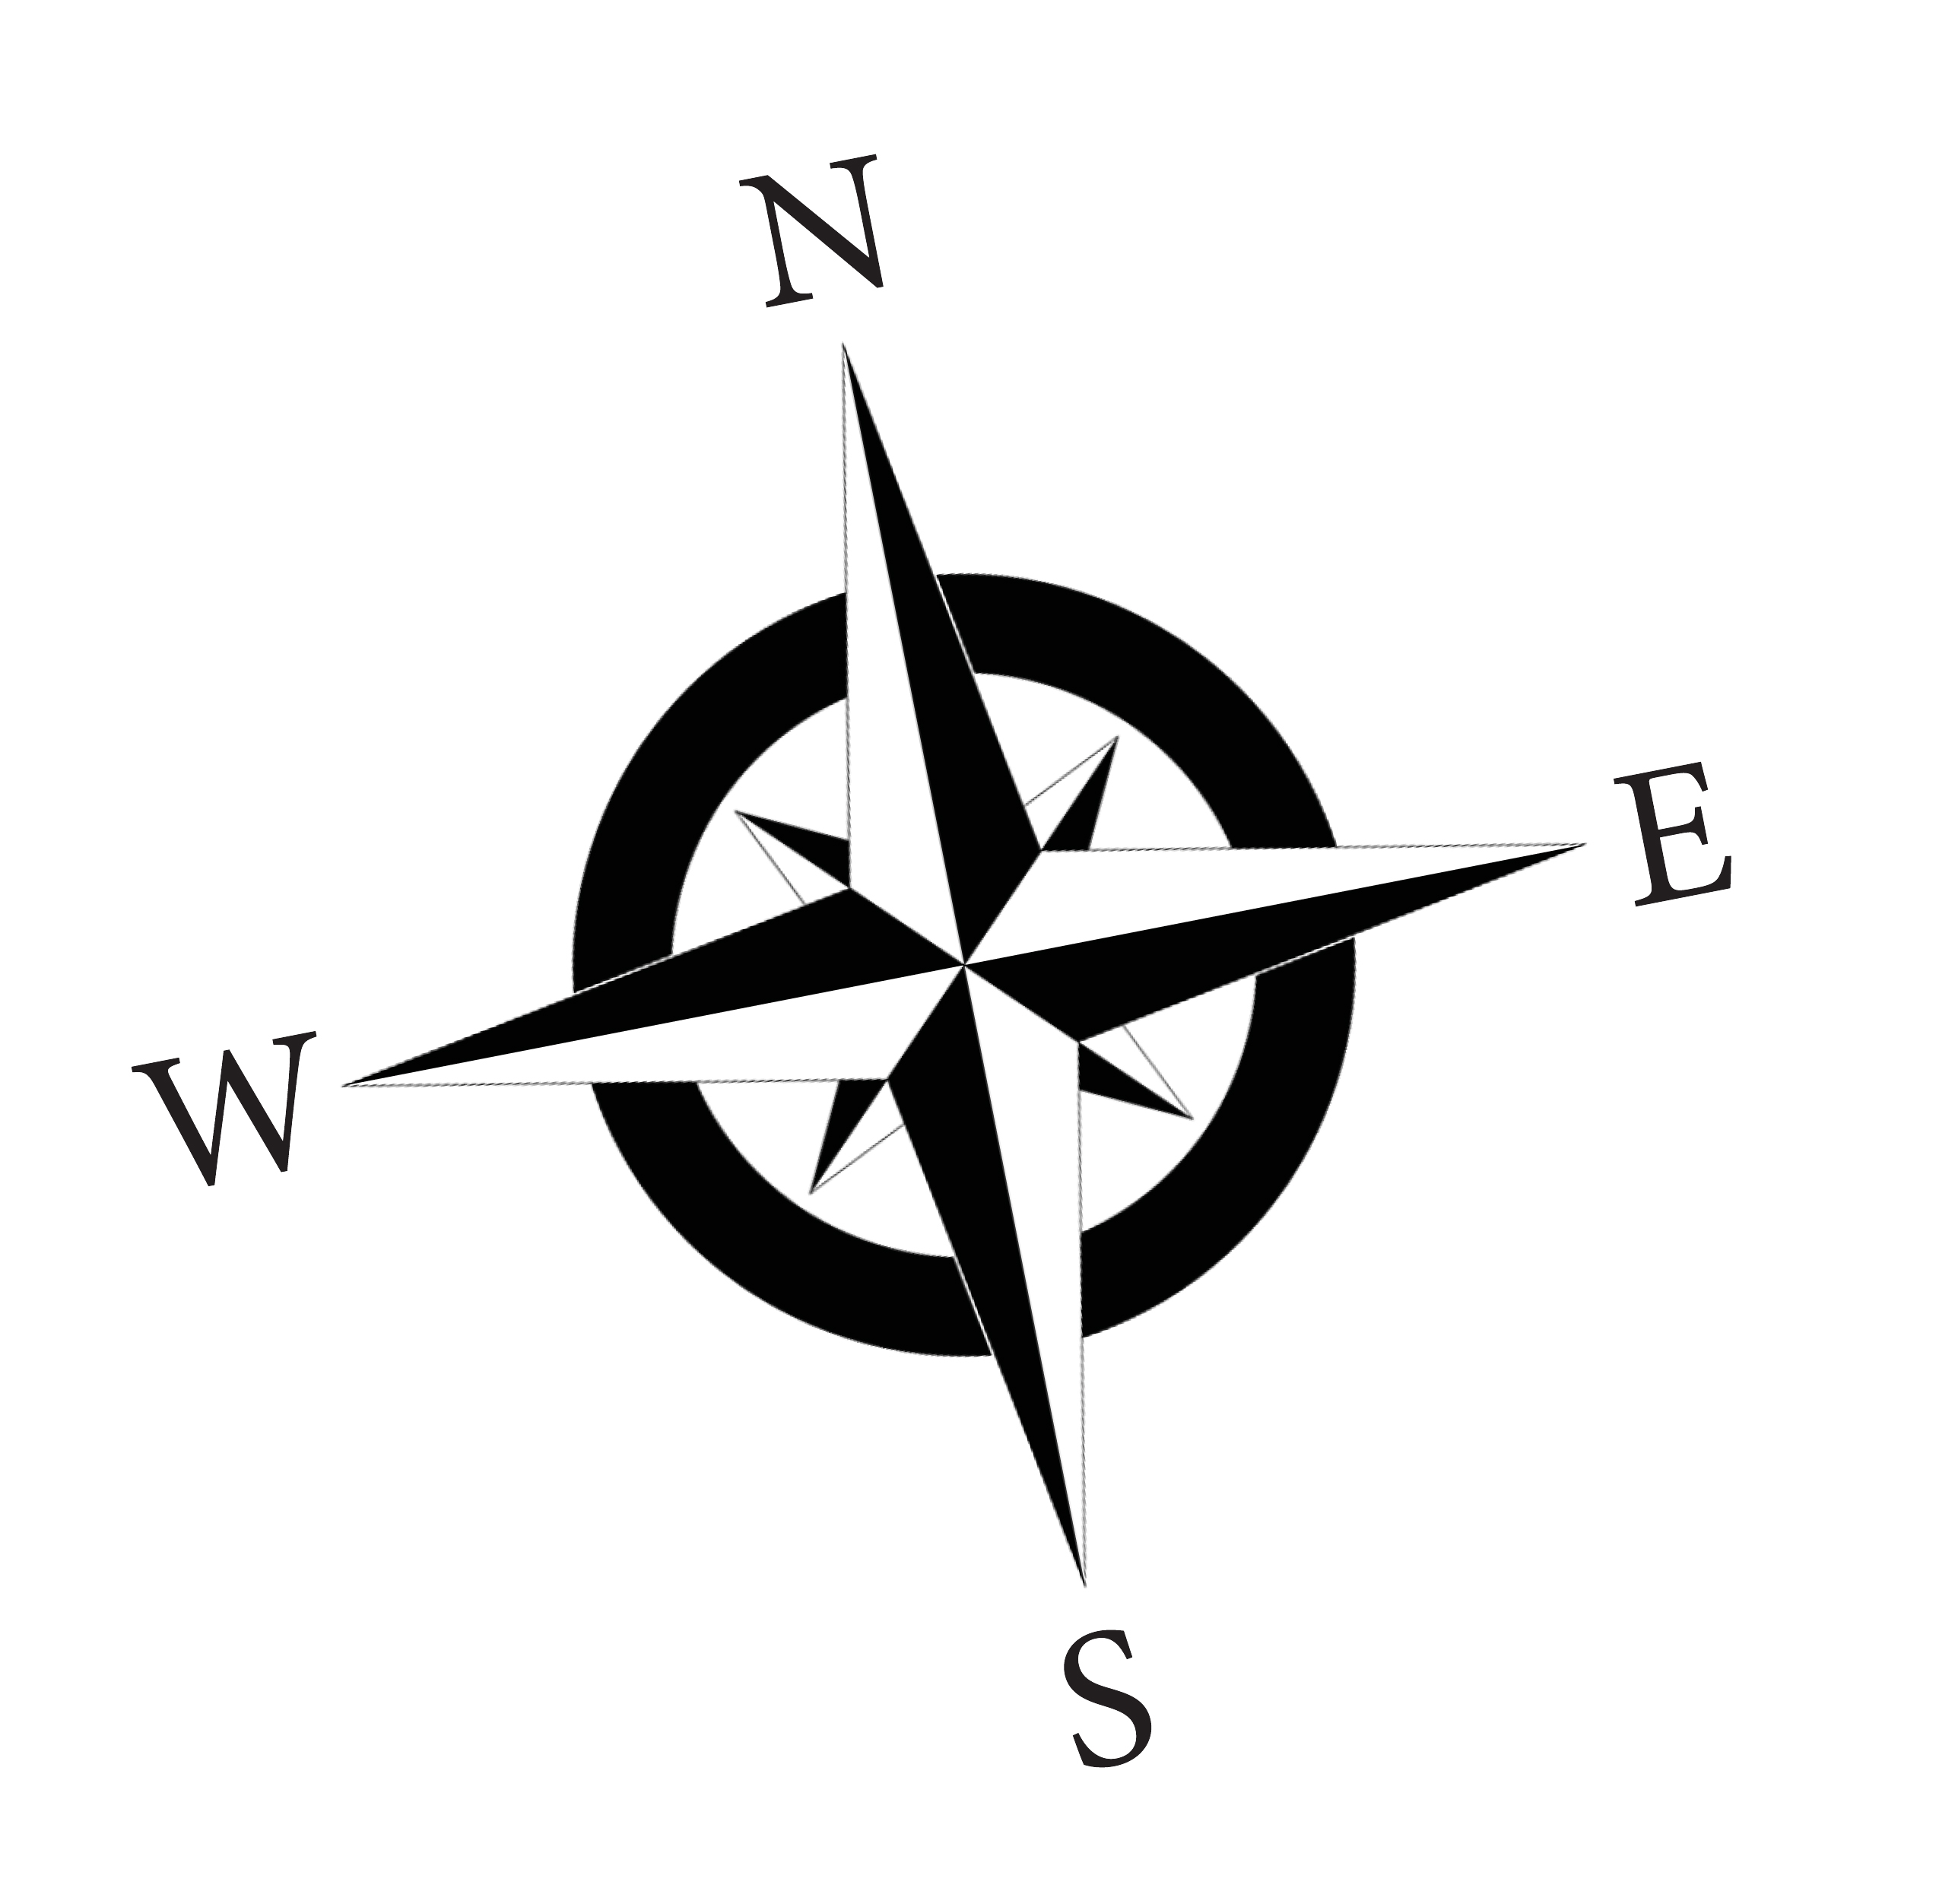 Free clipart for a compass with cross banner freeuse Free Compass Rose Cliparts, Download Free Clip Art, Free Clip Art on ... banner freeuse